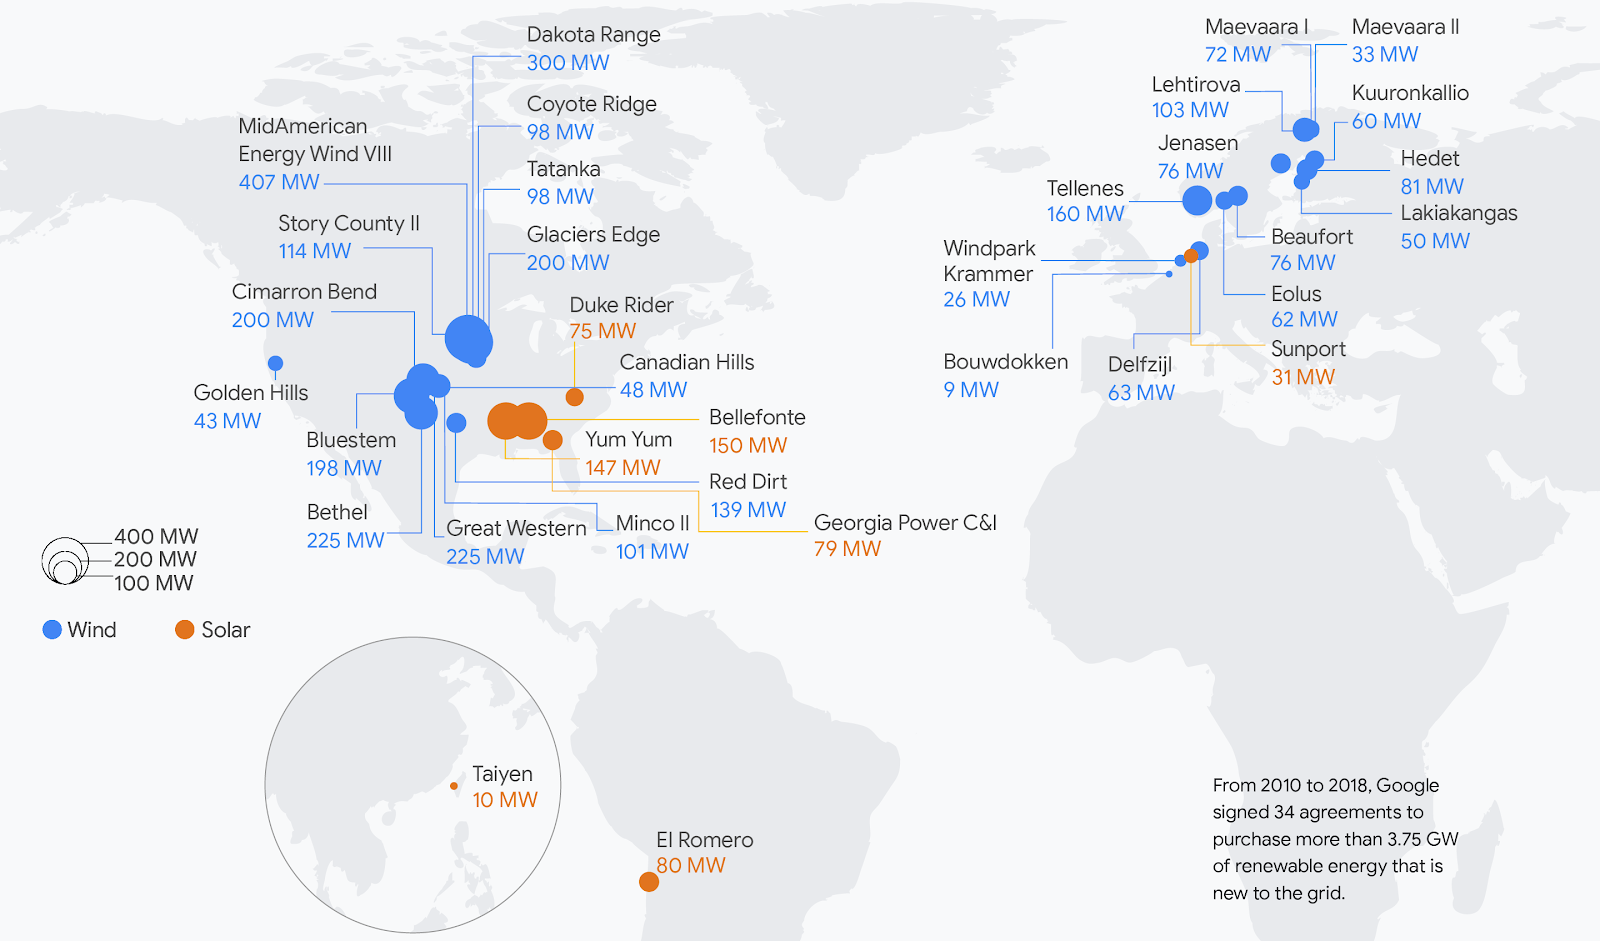 A worldwide map of all Google's renewable energy purchases from 2010-2018, representing more than 3.7 gigawatts of renewable energy that is new to the grid